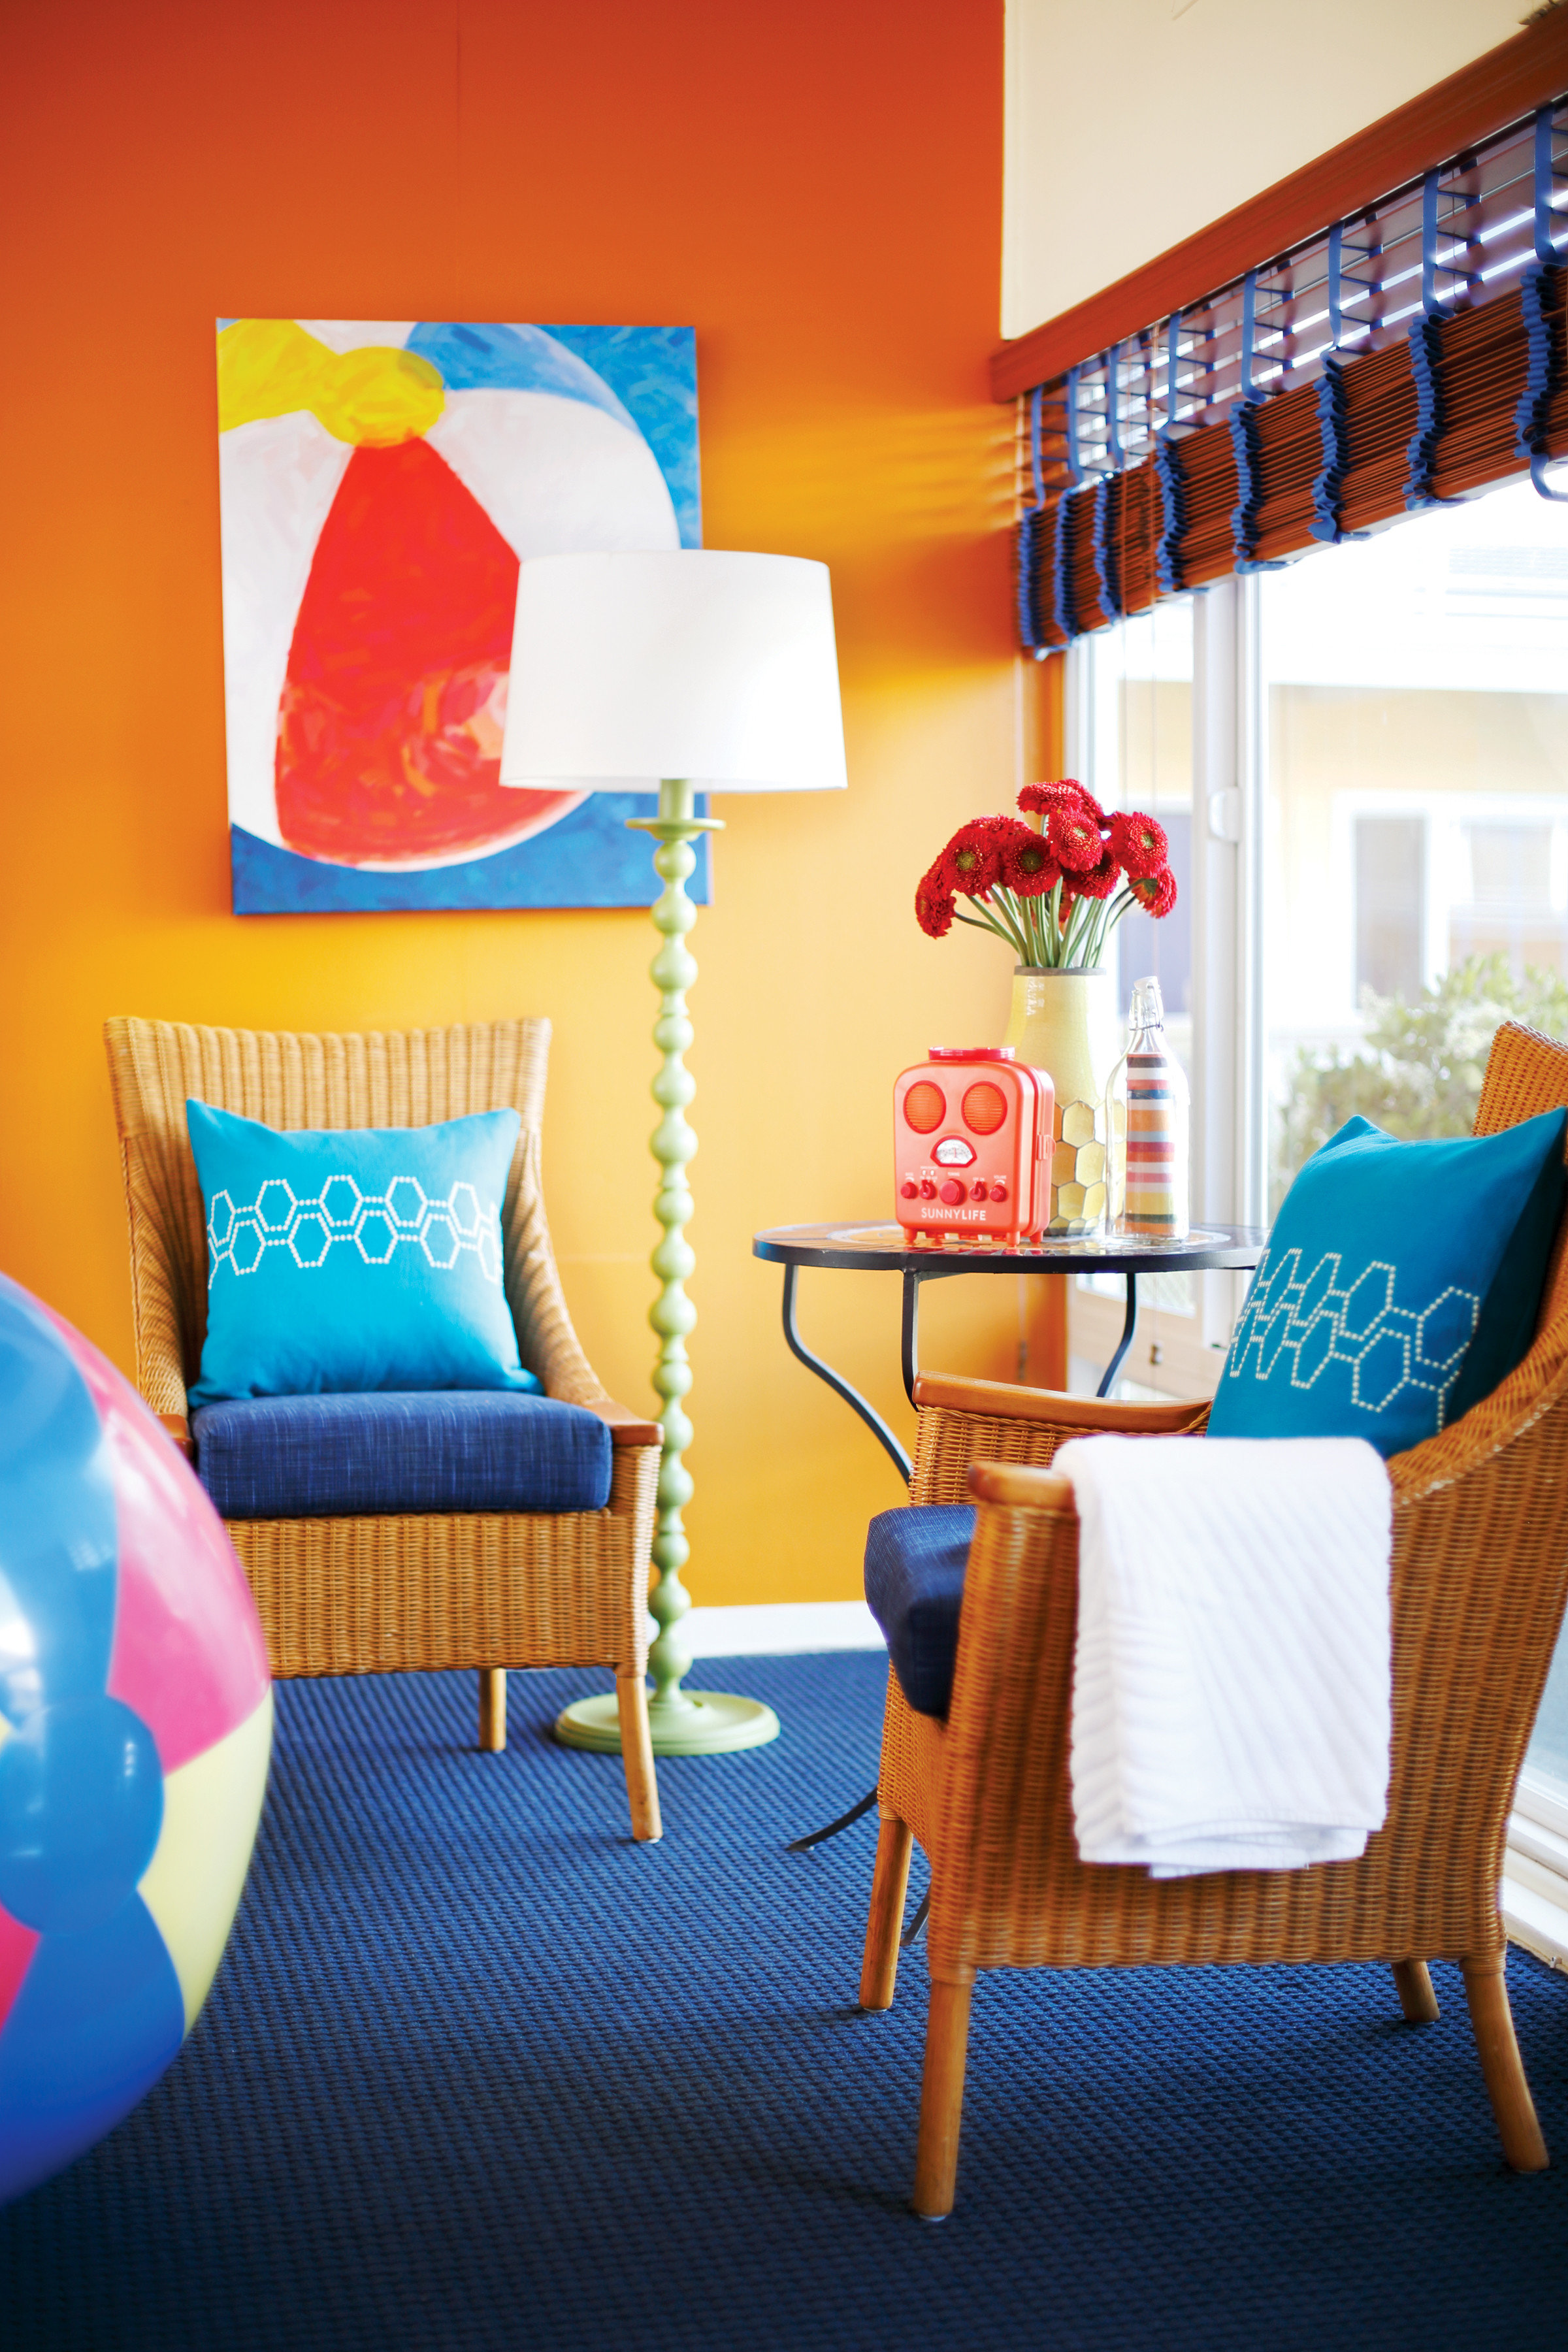 Family Travel Hip Modern Trip Ideas color chair living room Play home colorful colored